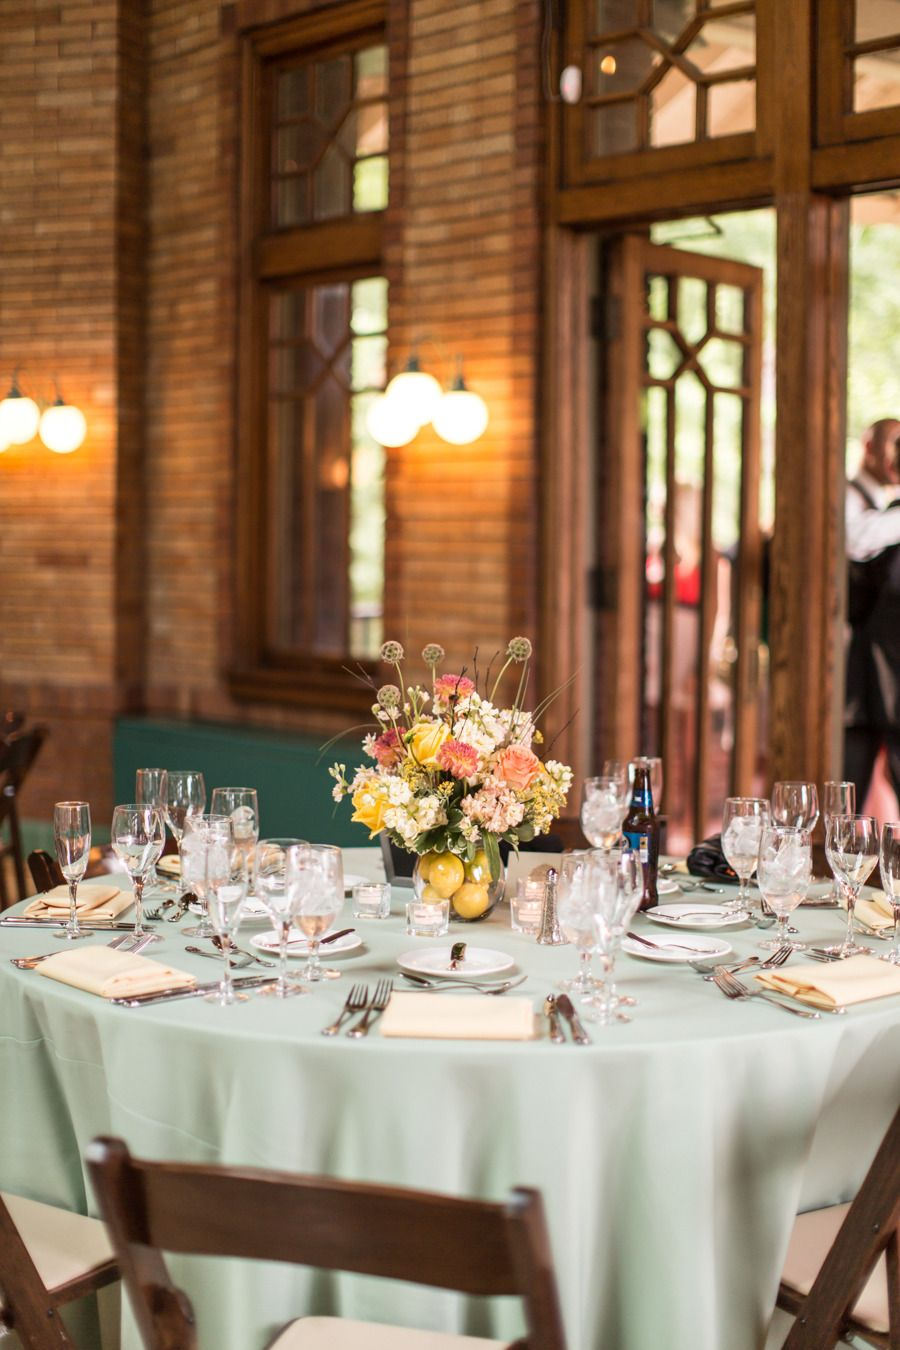 Chicago Wedding at Cafe Brauer from Cristina G Photography